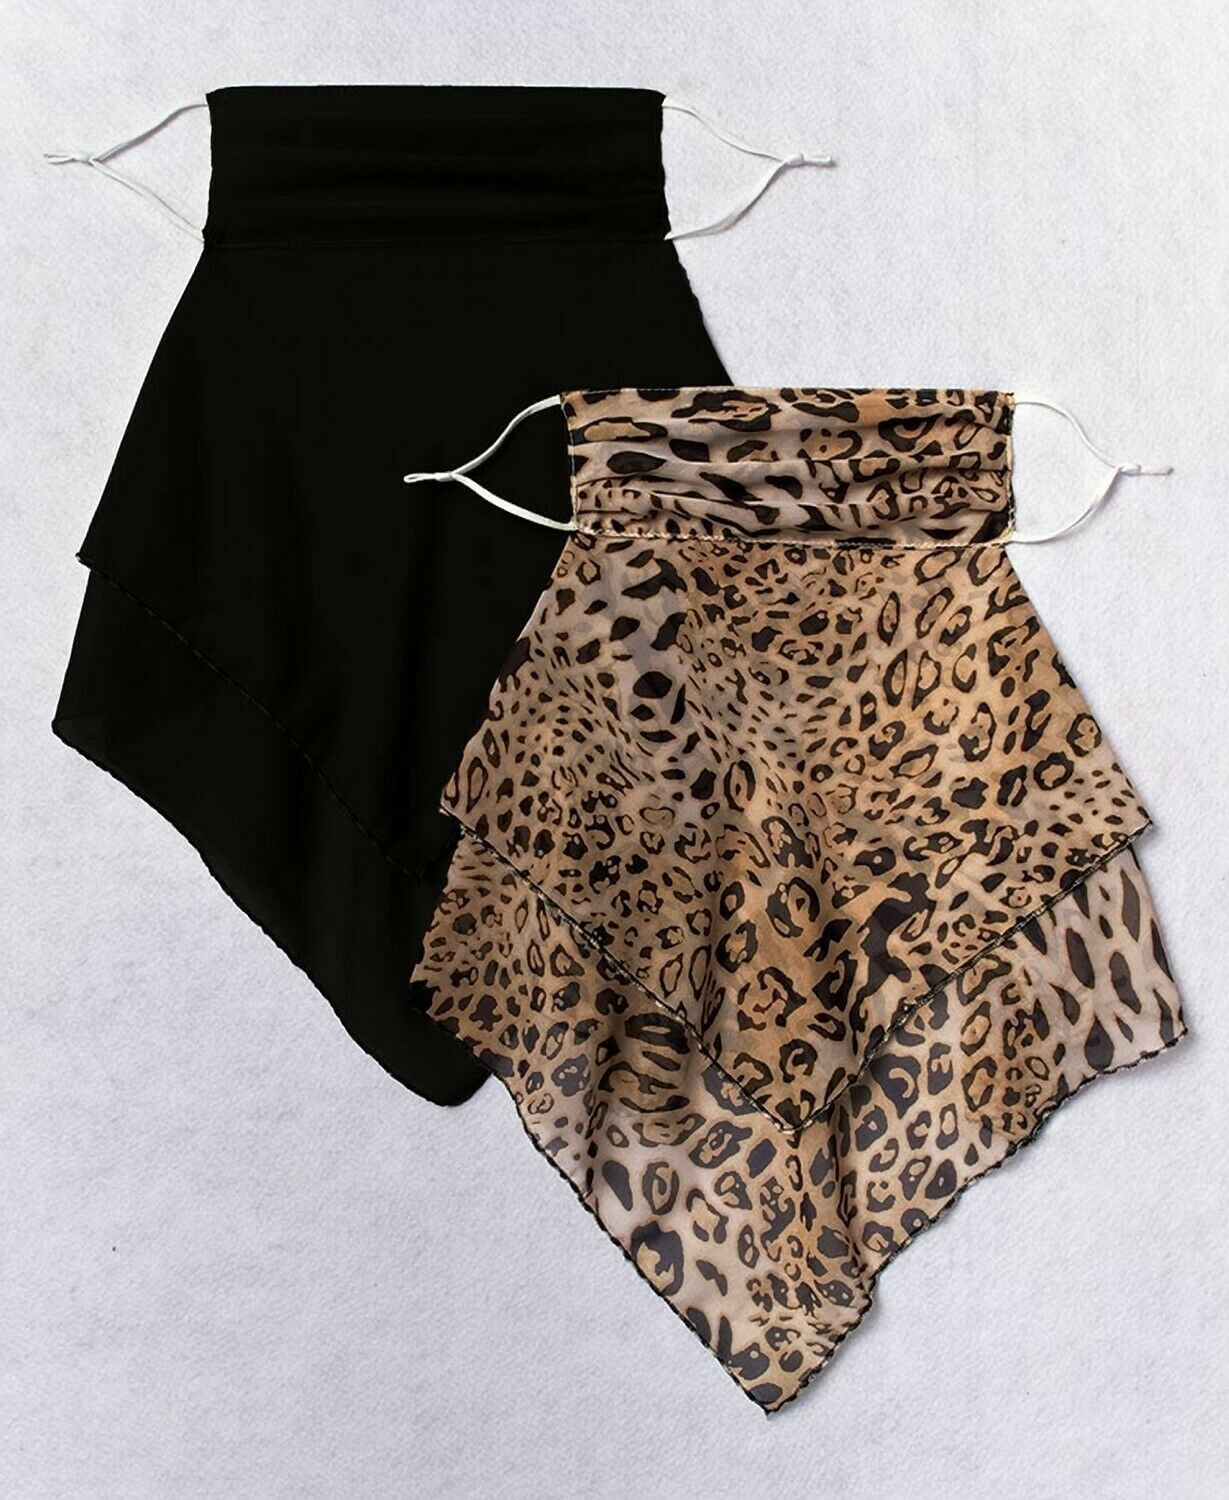 Women's Set of 2 Convertible Scarves w/ Face Mask Covering - Leopard Print Black